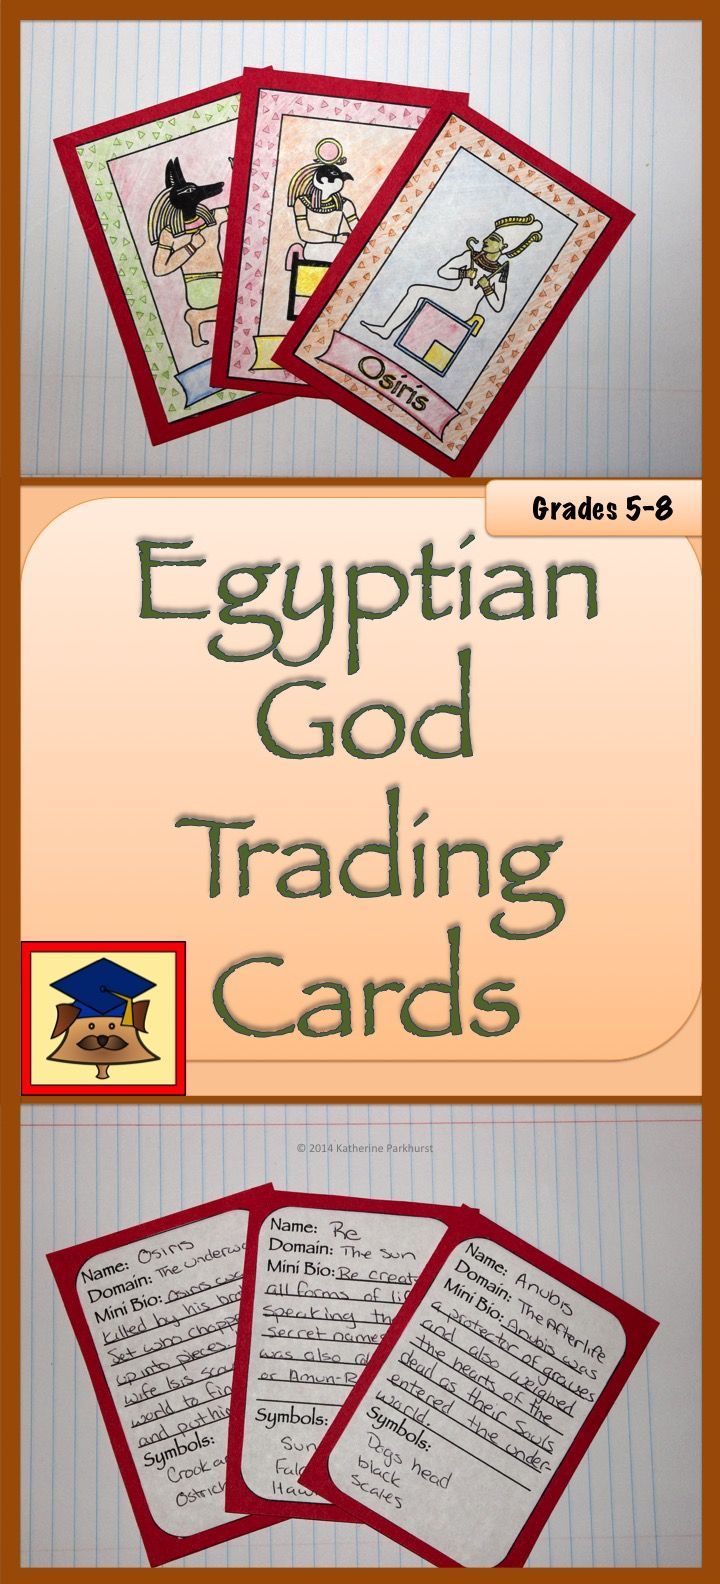 $2.00 Egyptian God Trading Cards is a fun project designed to help students learn about the colorful characters in Ancient Egyptian Mythology. Once students have completed the cards, they are a great way to decorate a classroom or to show at an open house.